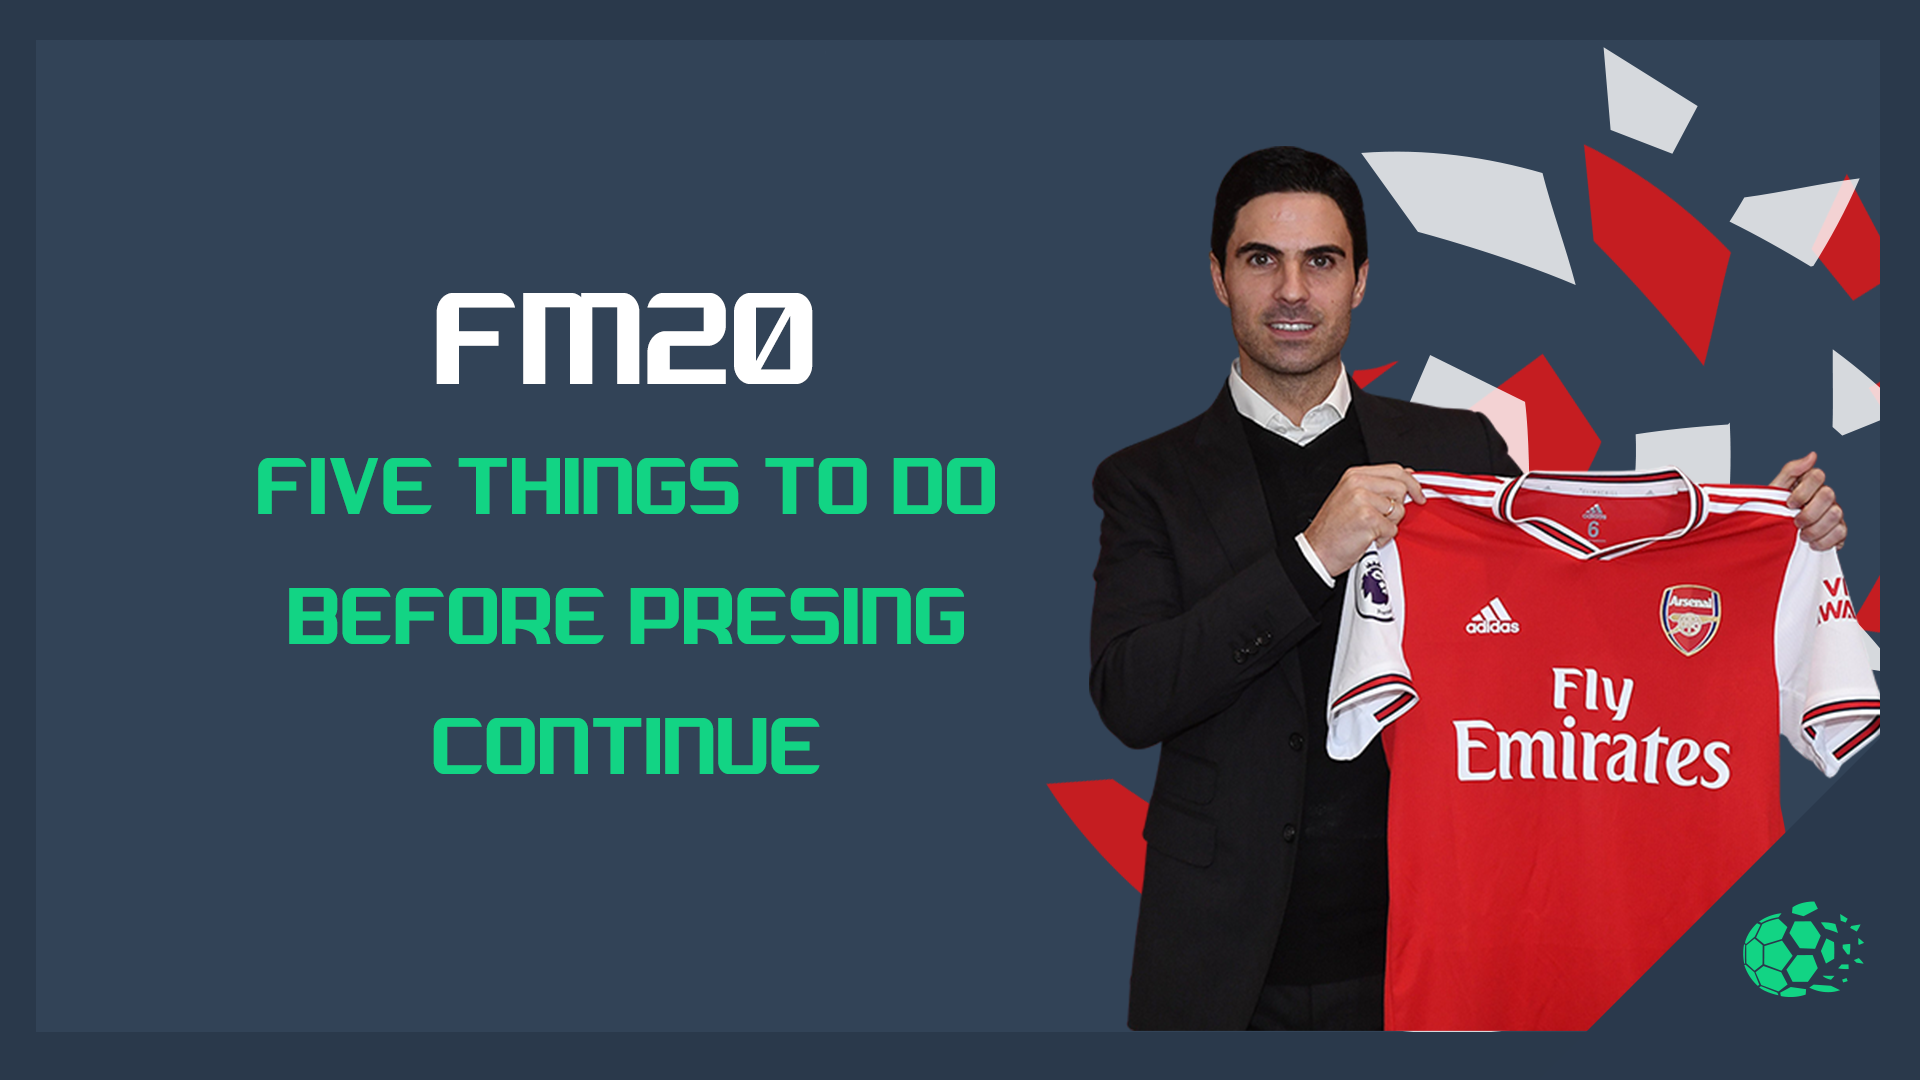 """FM20 FM20: 5 Things To Do Before Pressing Continue"" feature image"